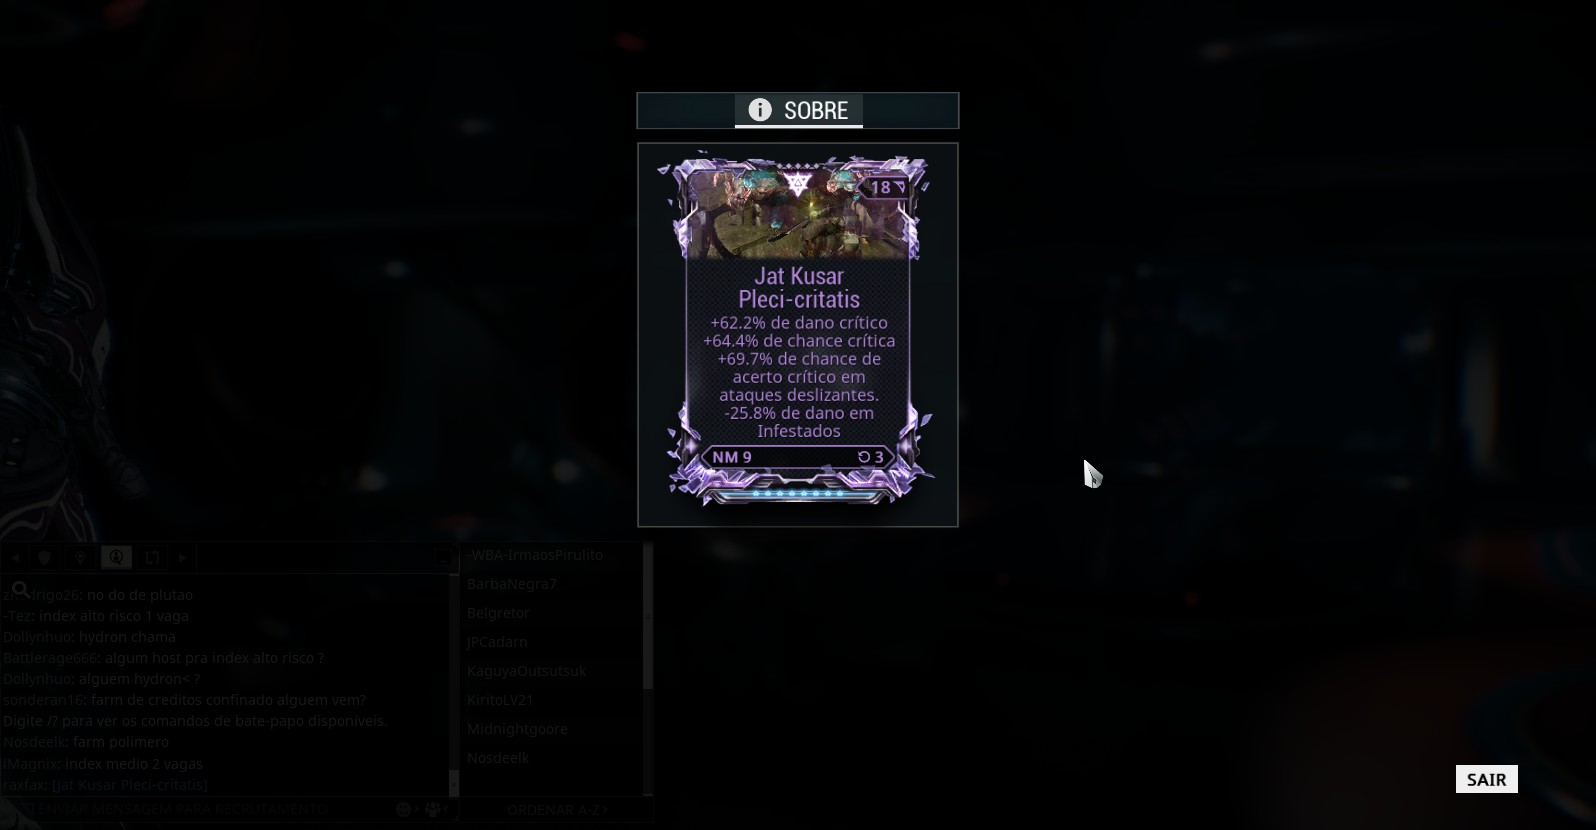 WTS jat kusar riven CC/CD/CC on slide -dmg to infested - PC